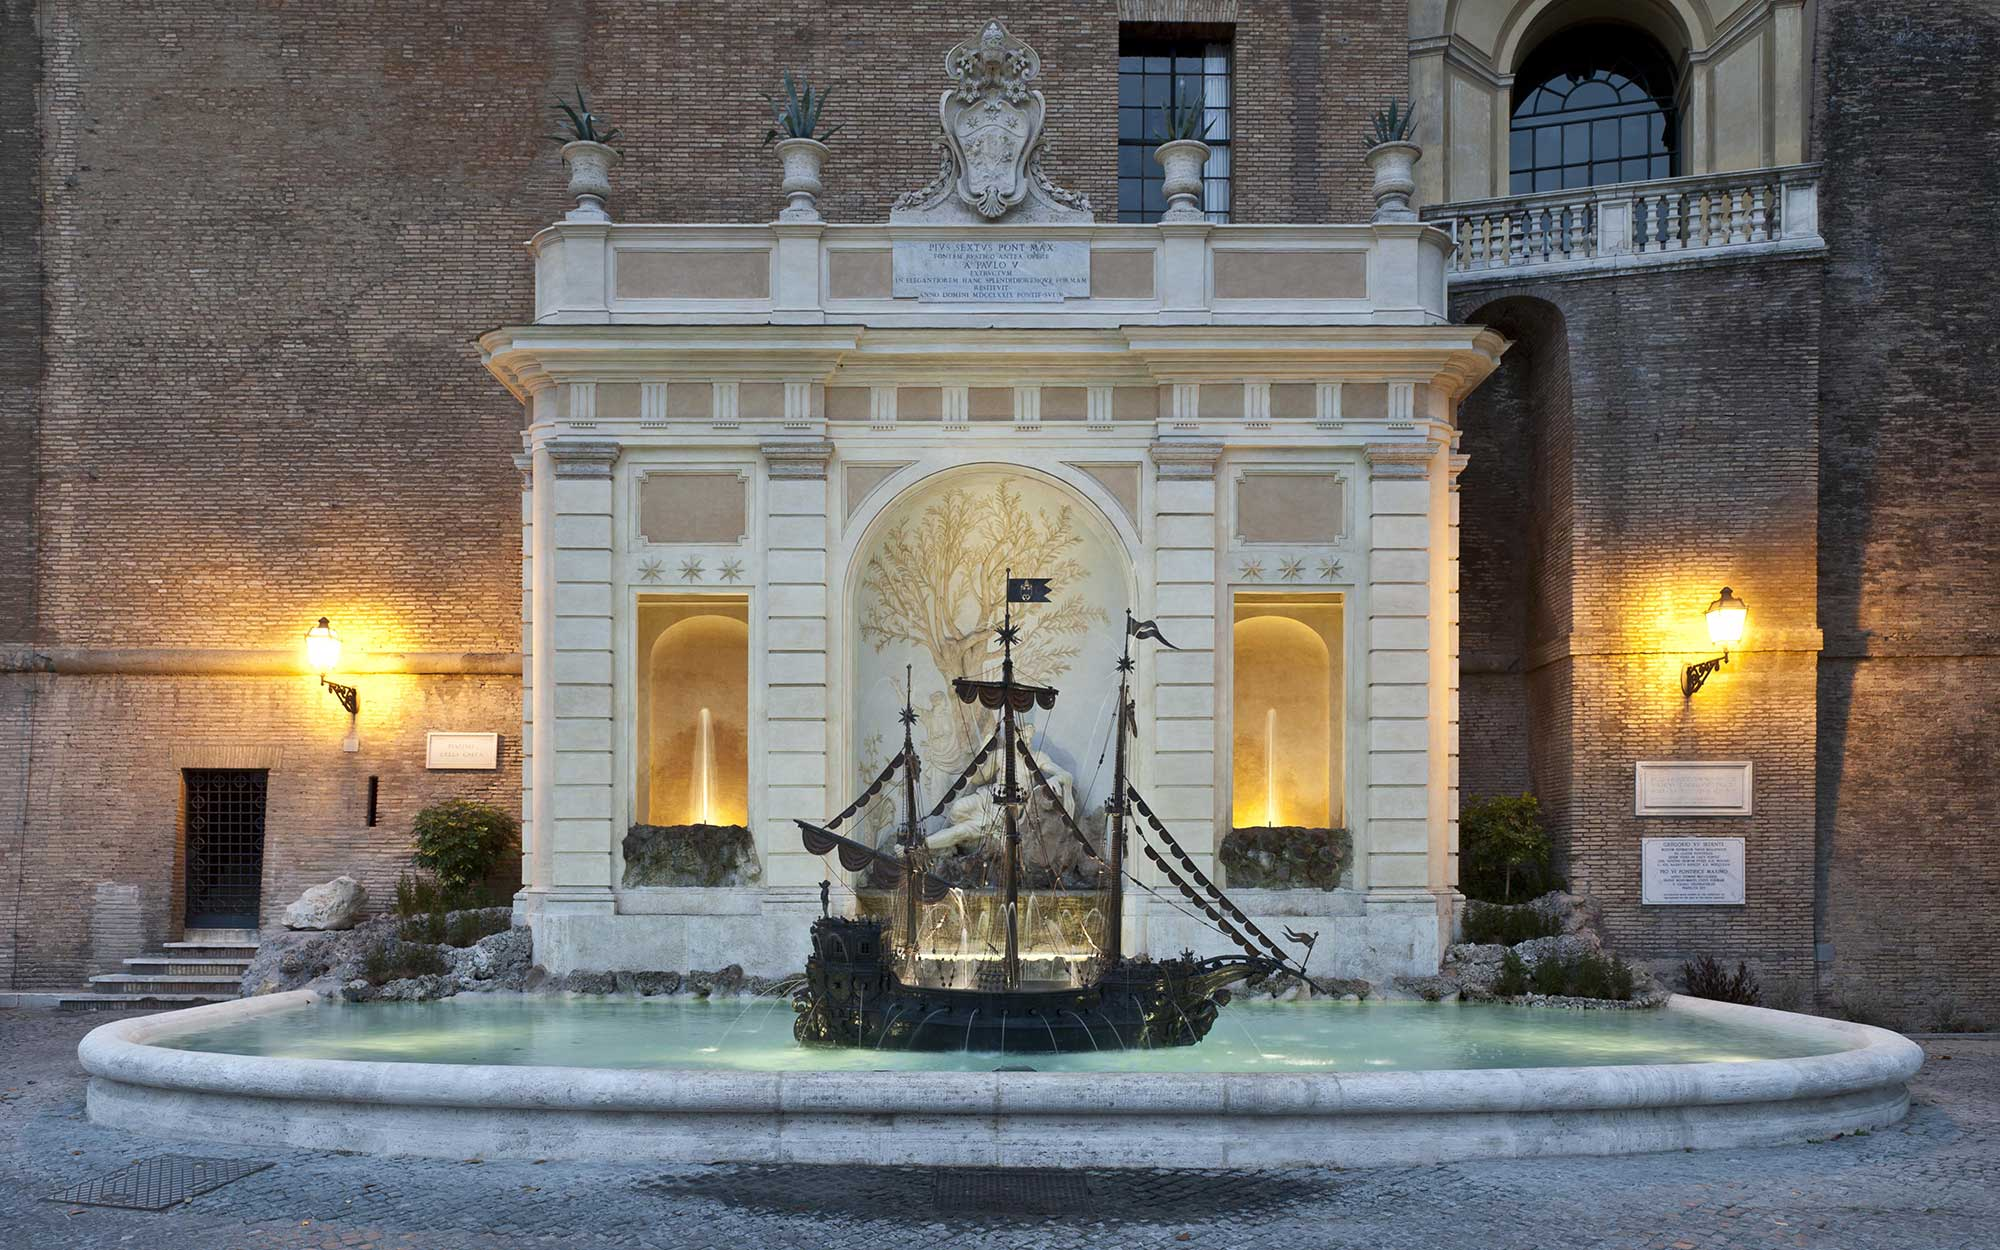 12 Roman Fountains That Will Make You Want to Book a Flight: Fontana Della Galera